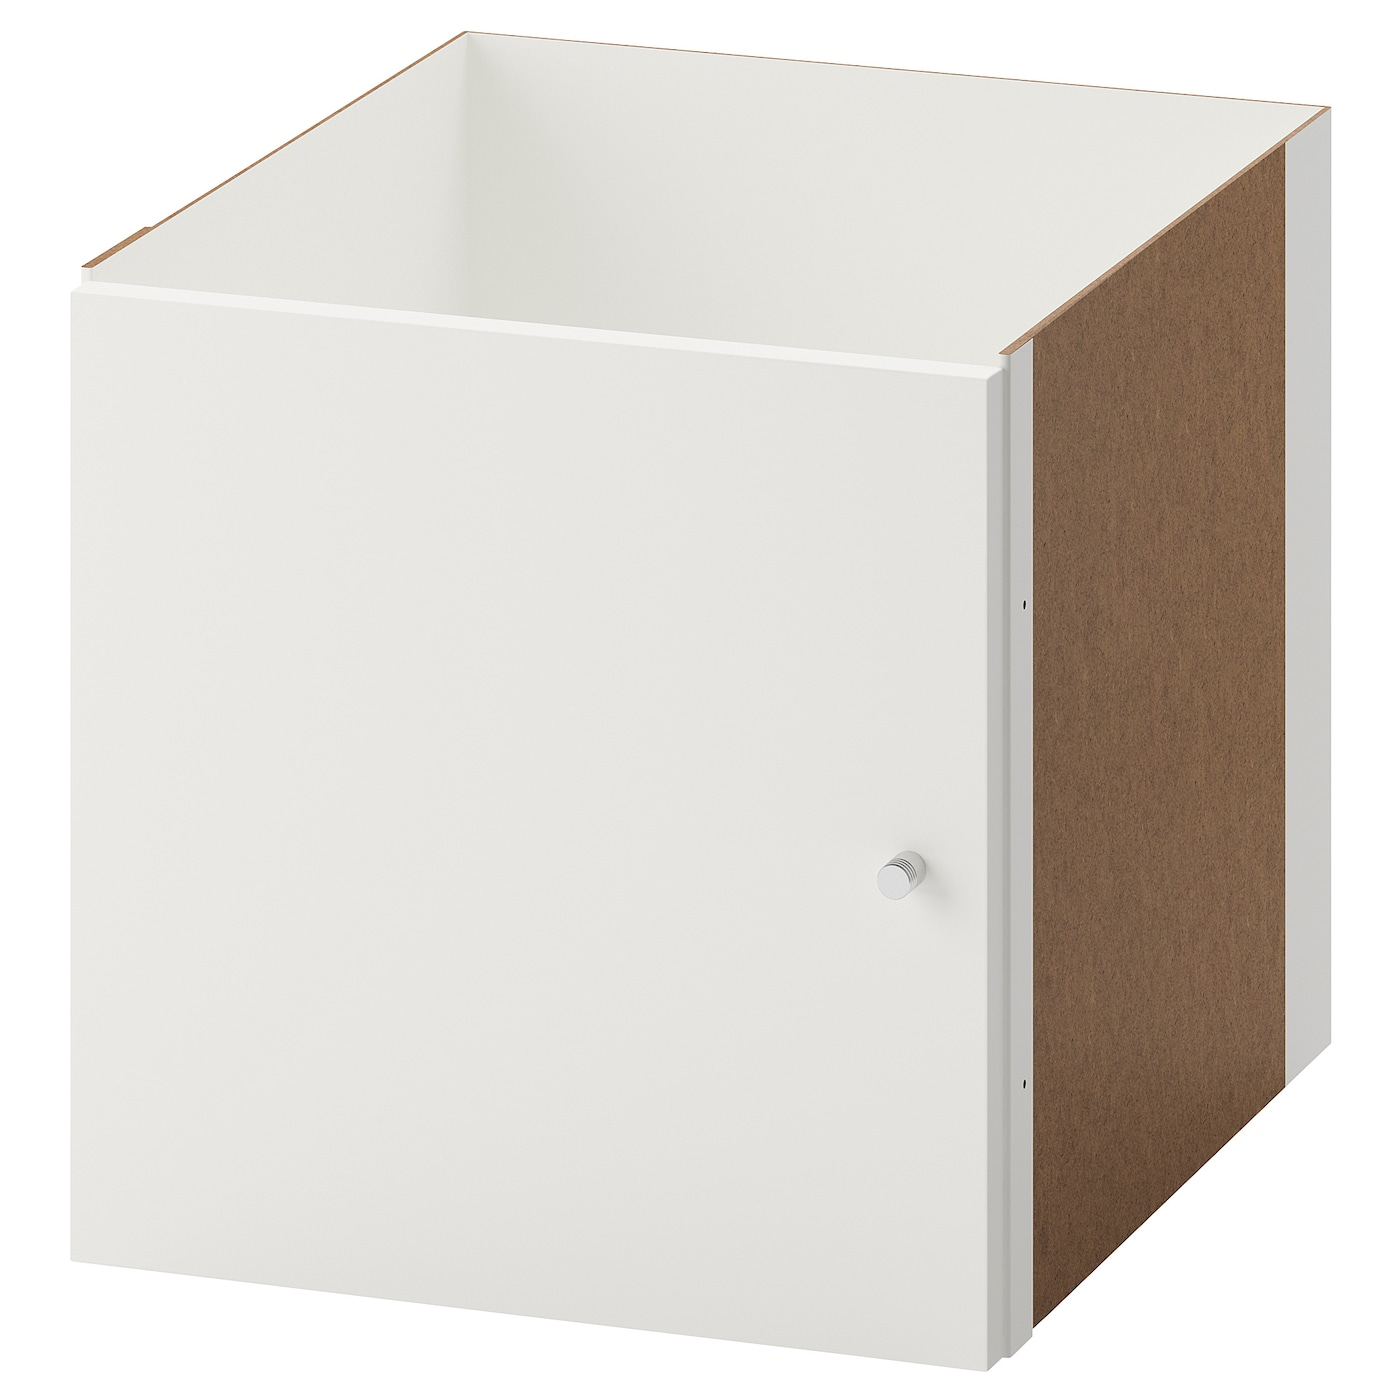 https://www.ikea.com/be/nl/images/products/kallax-insert-with-door-white__0640668_PE699973_S5.JPG